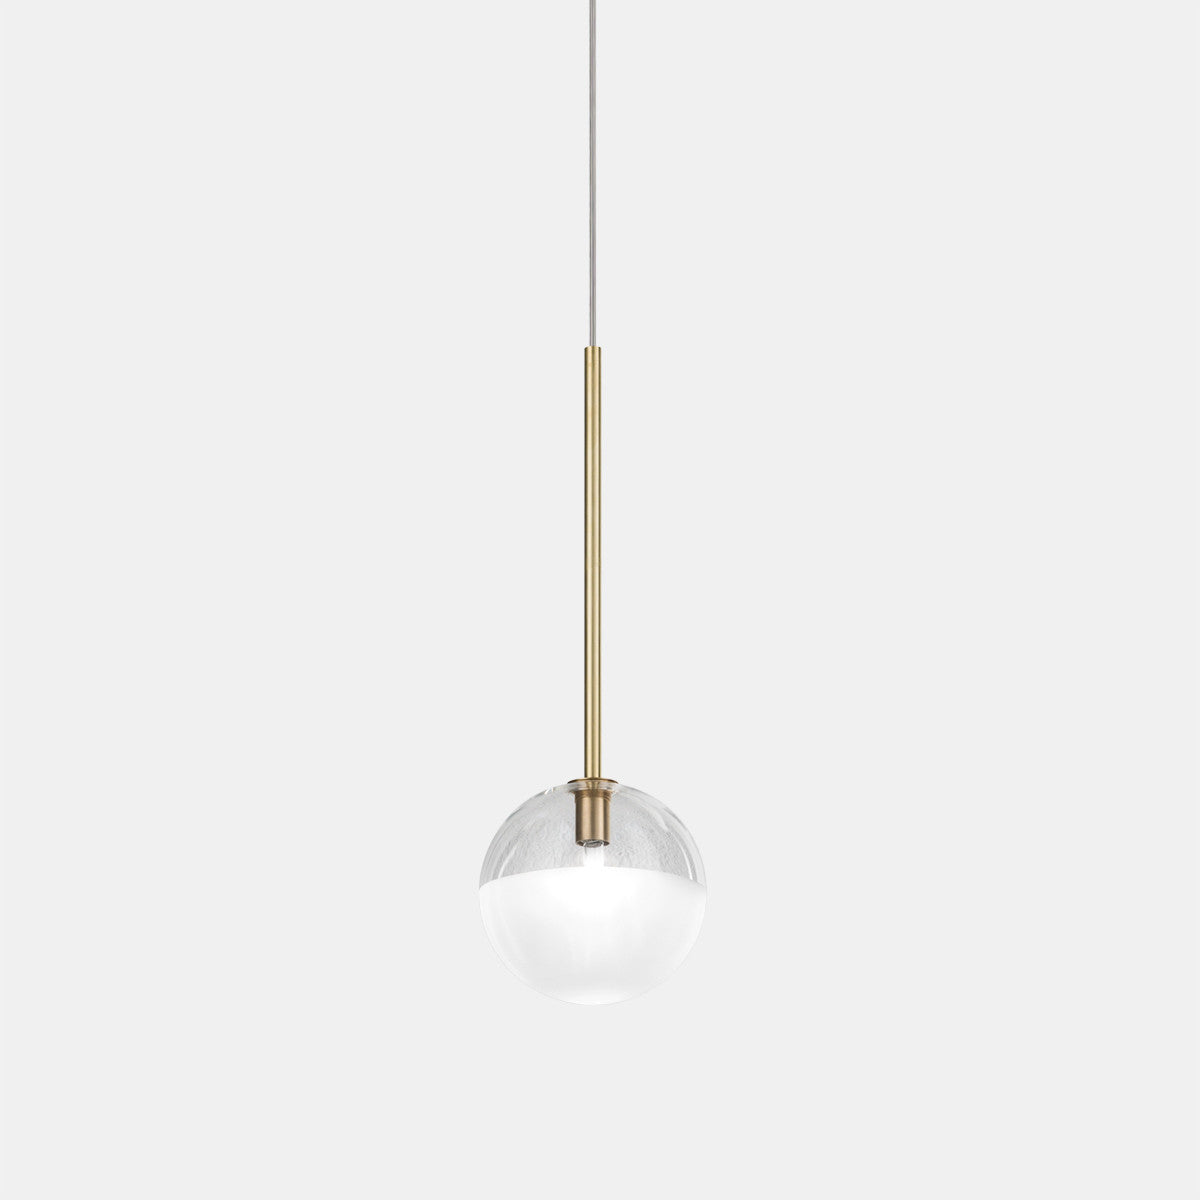 MOLECULE Pendant Light 275.05 | touchGOODS